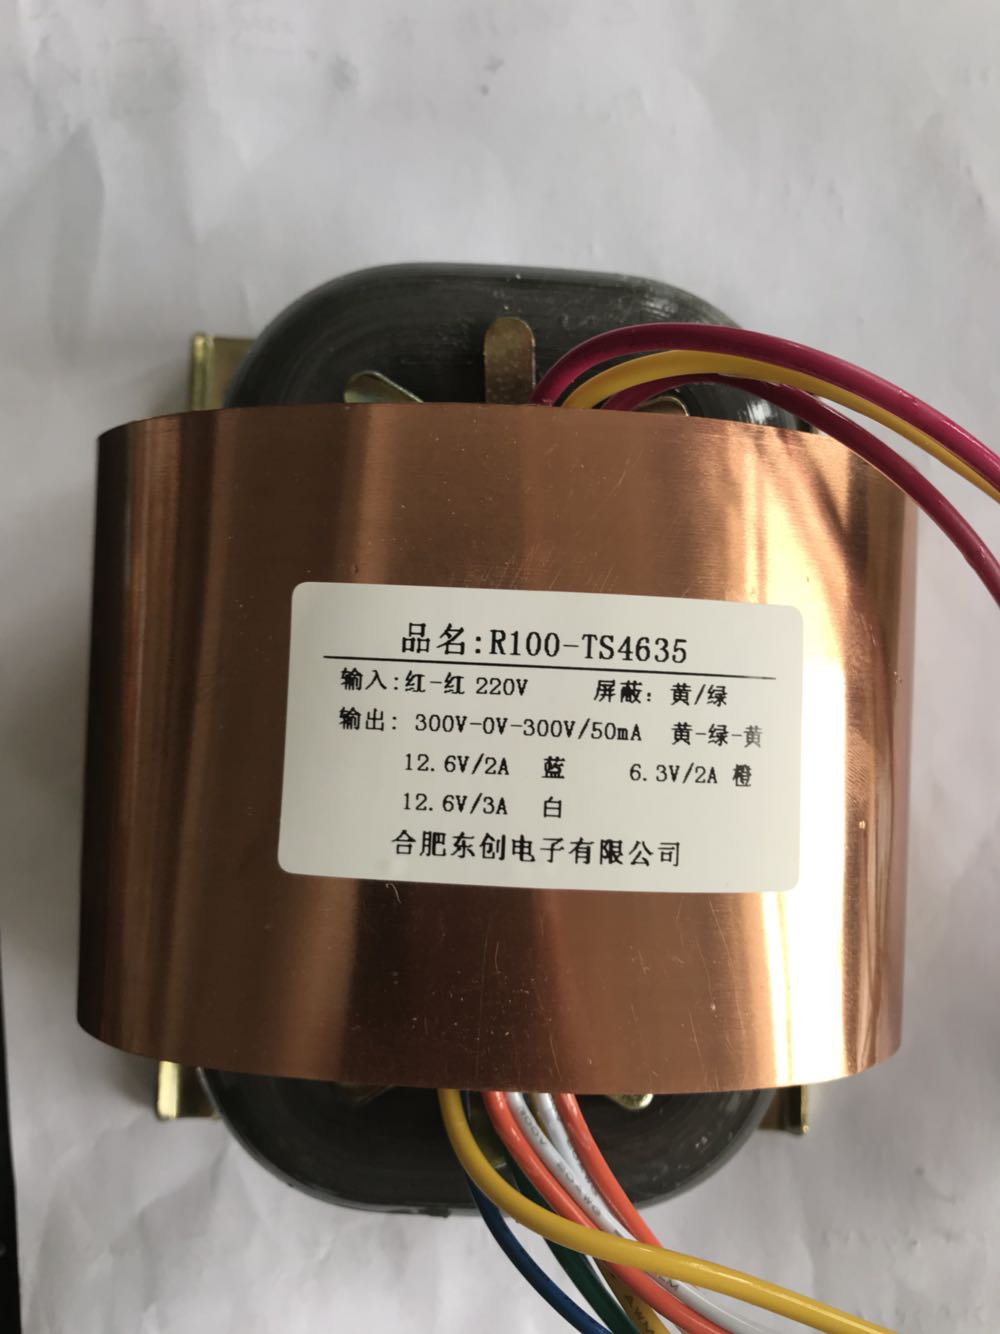 300V-0-300V 50mA 12.6V 3A 12.6V 2A 6.3V 2A R Core Transformer 100VA R100 custom transformer 220V copper shield Power amplifier 200pcs lot smd transistor mmbta92 2d 0 2a 300v pnp sot23